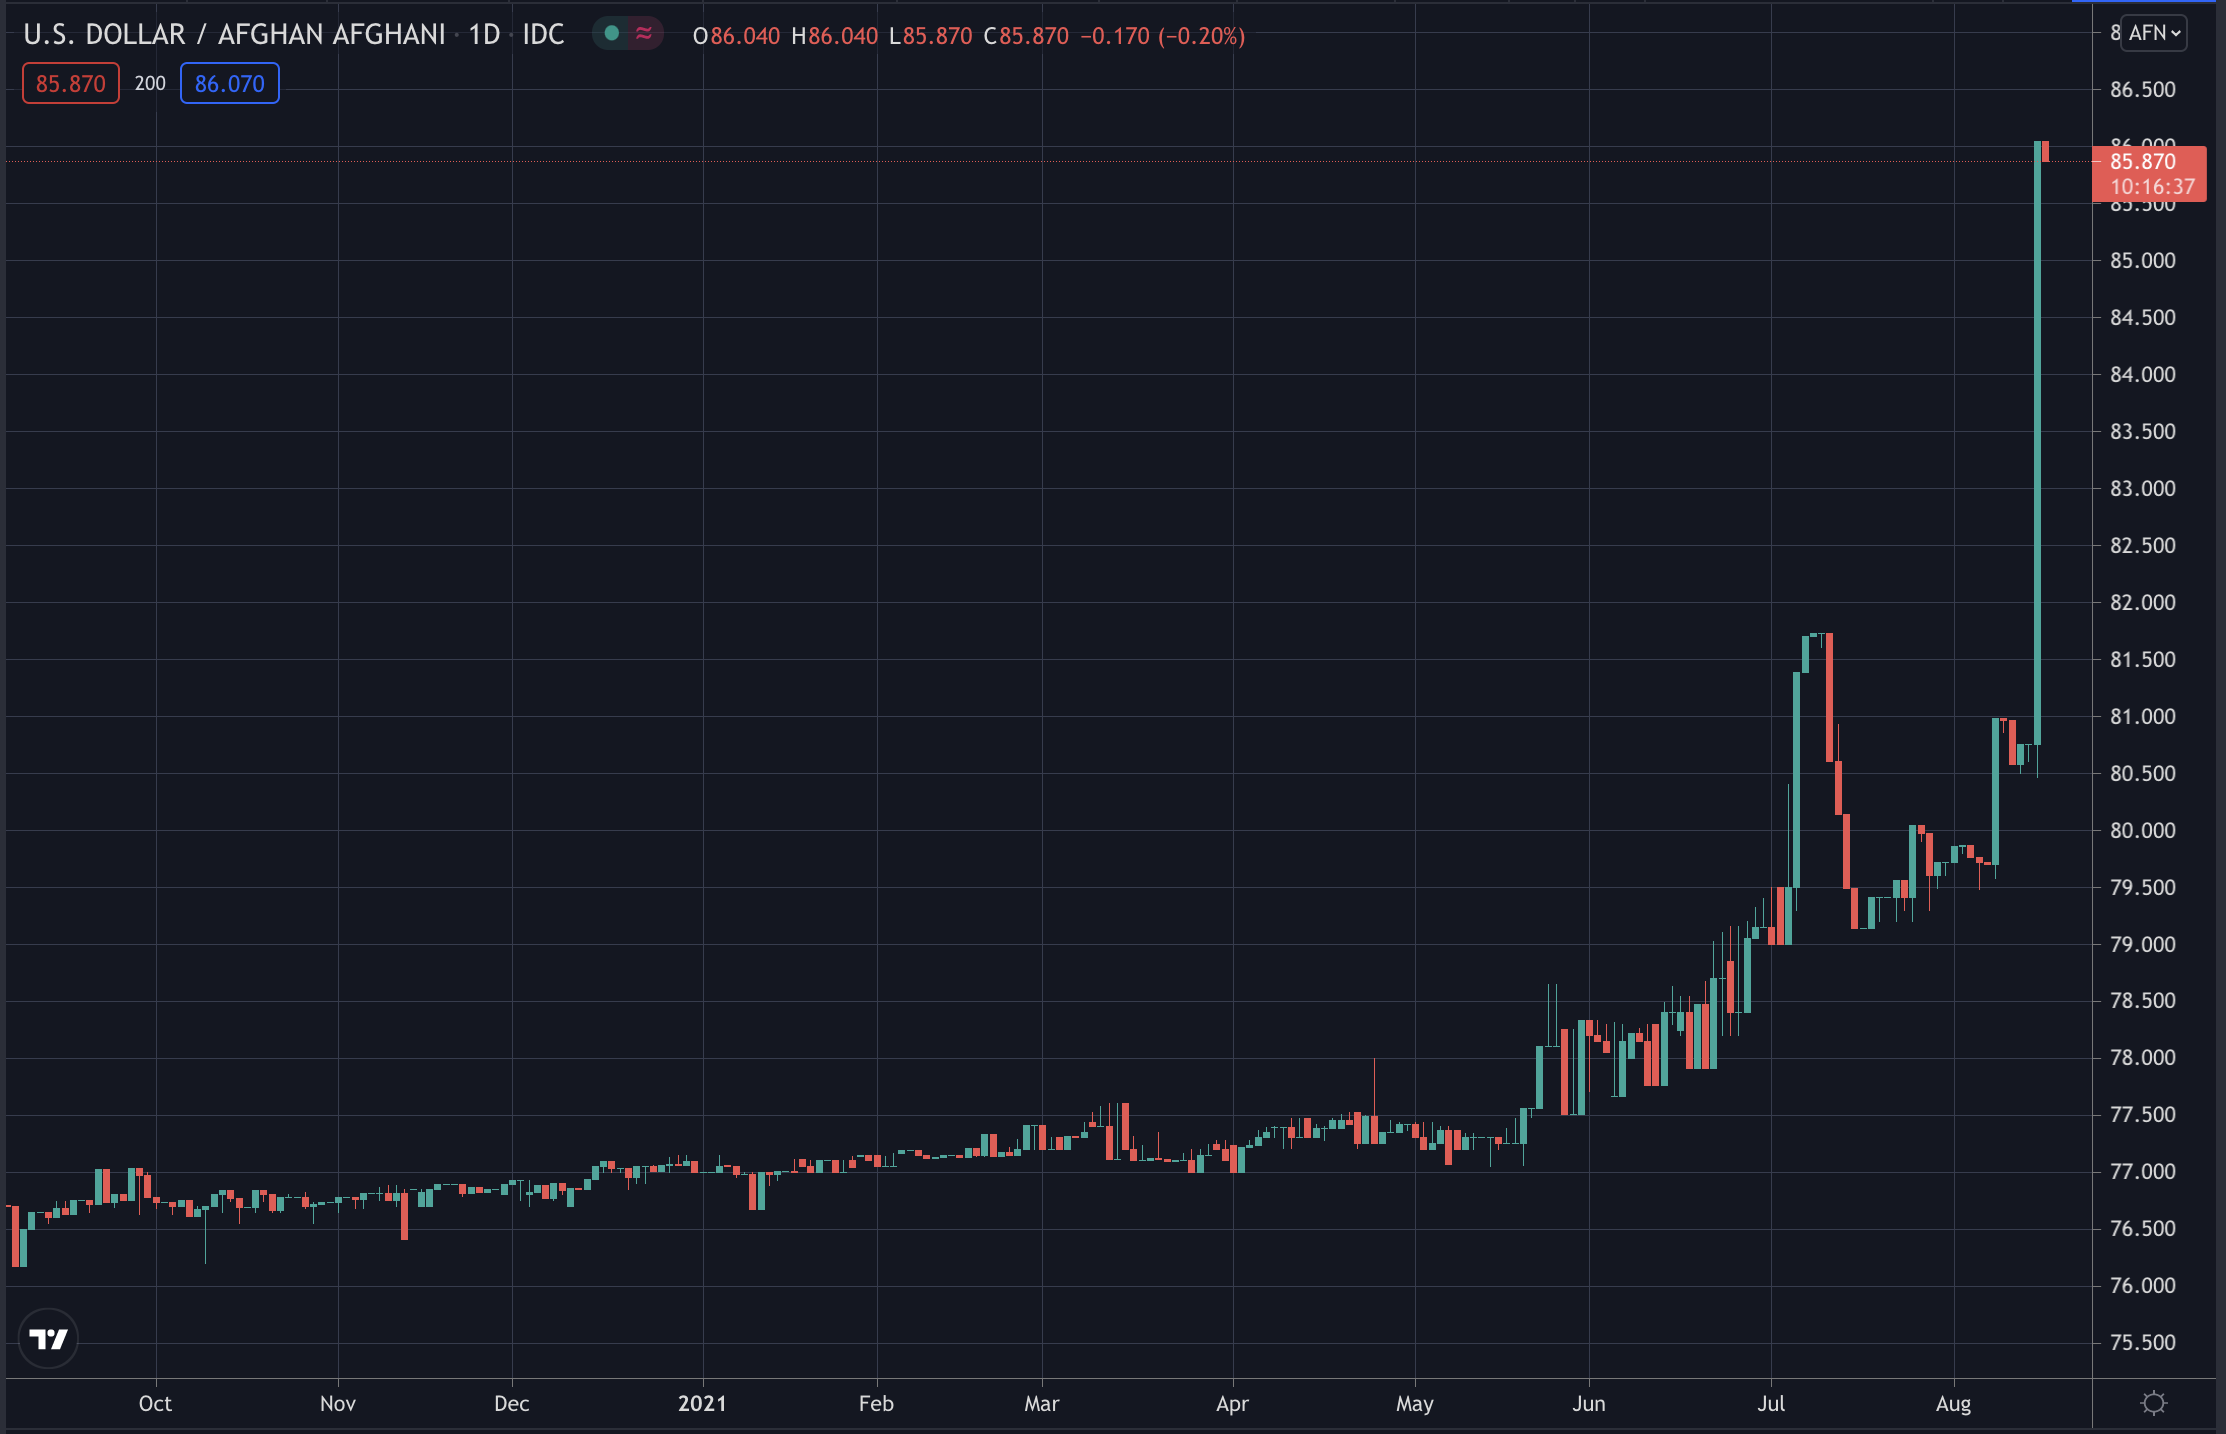 The Afghani Currency Plunges as Central Bank Governor Flees – Trustnodes